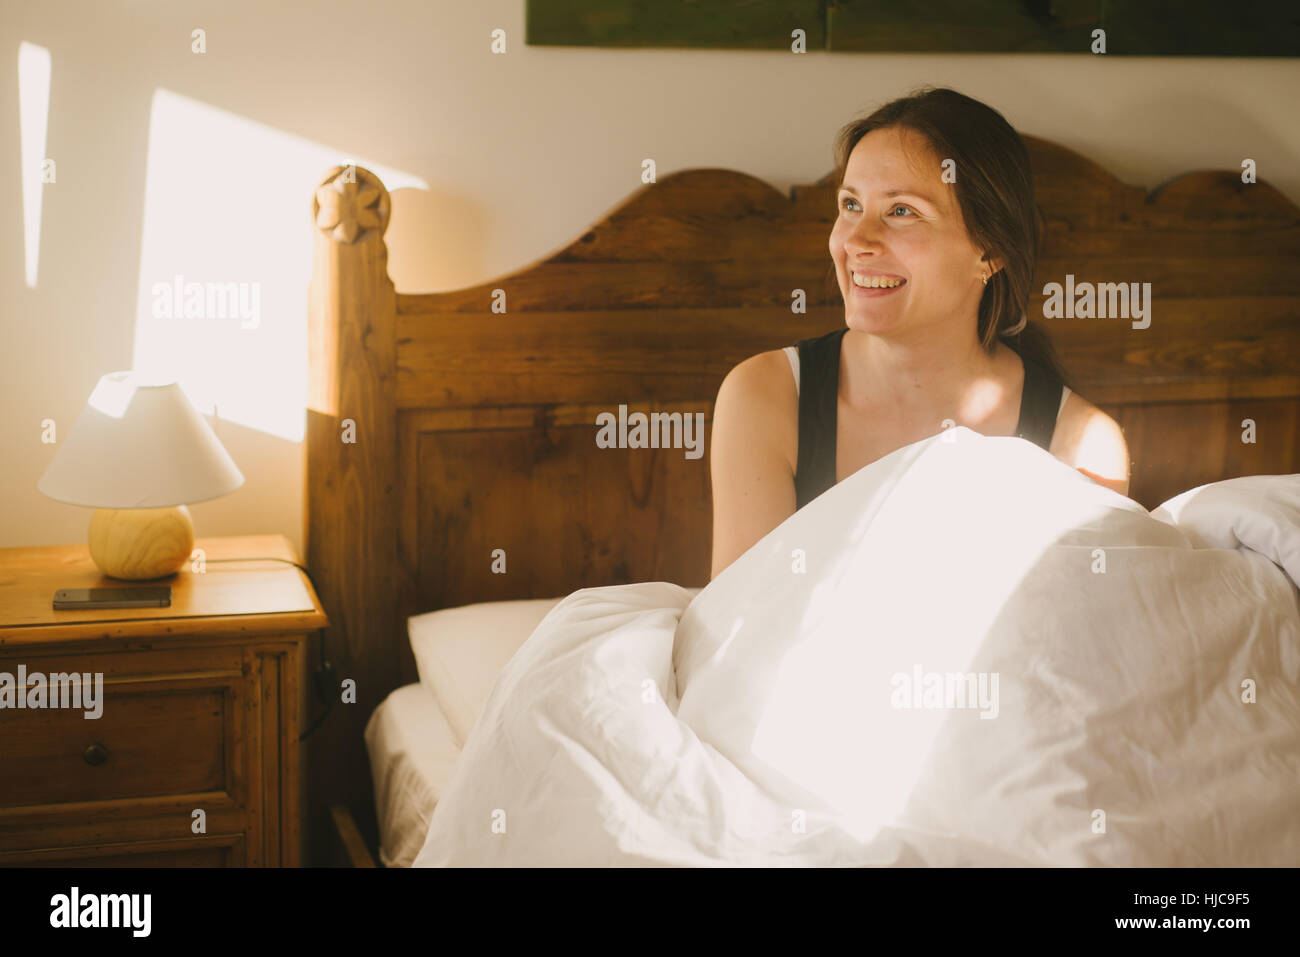 Woman smiling in bed - Stock Image